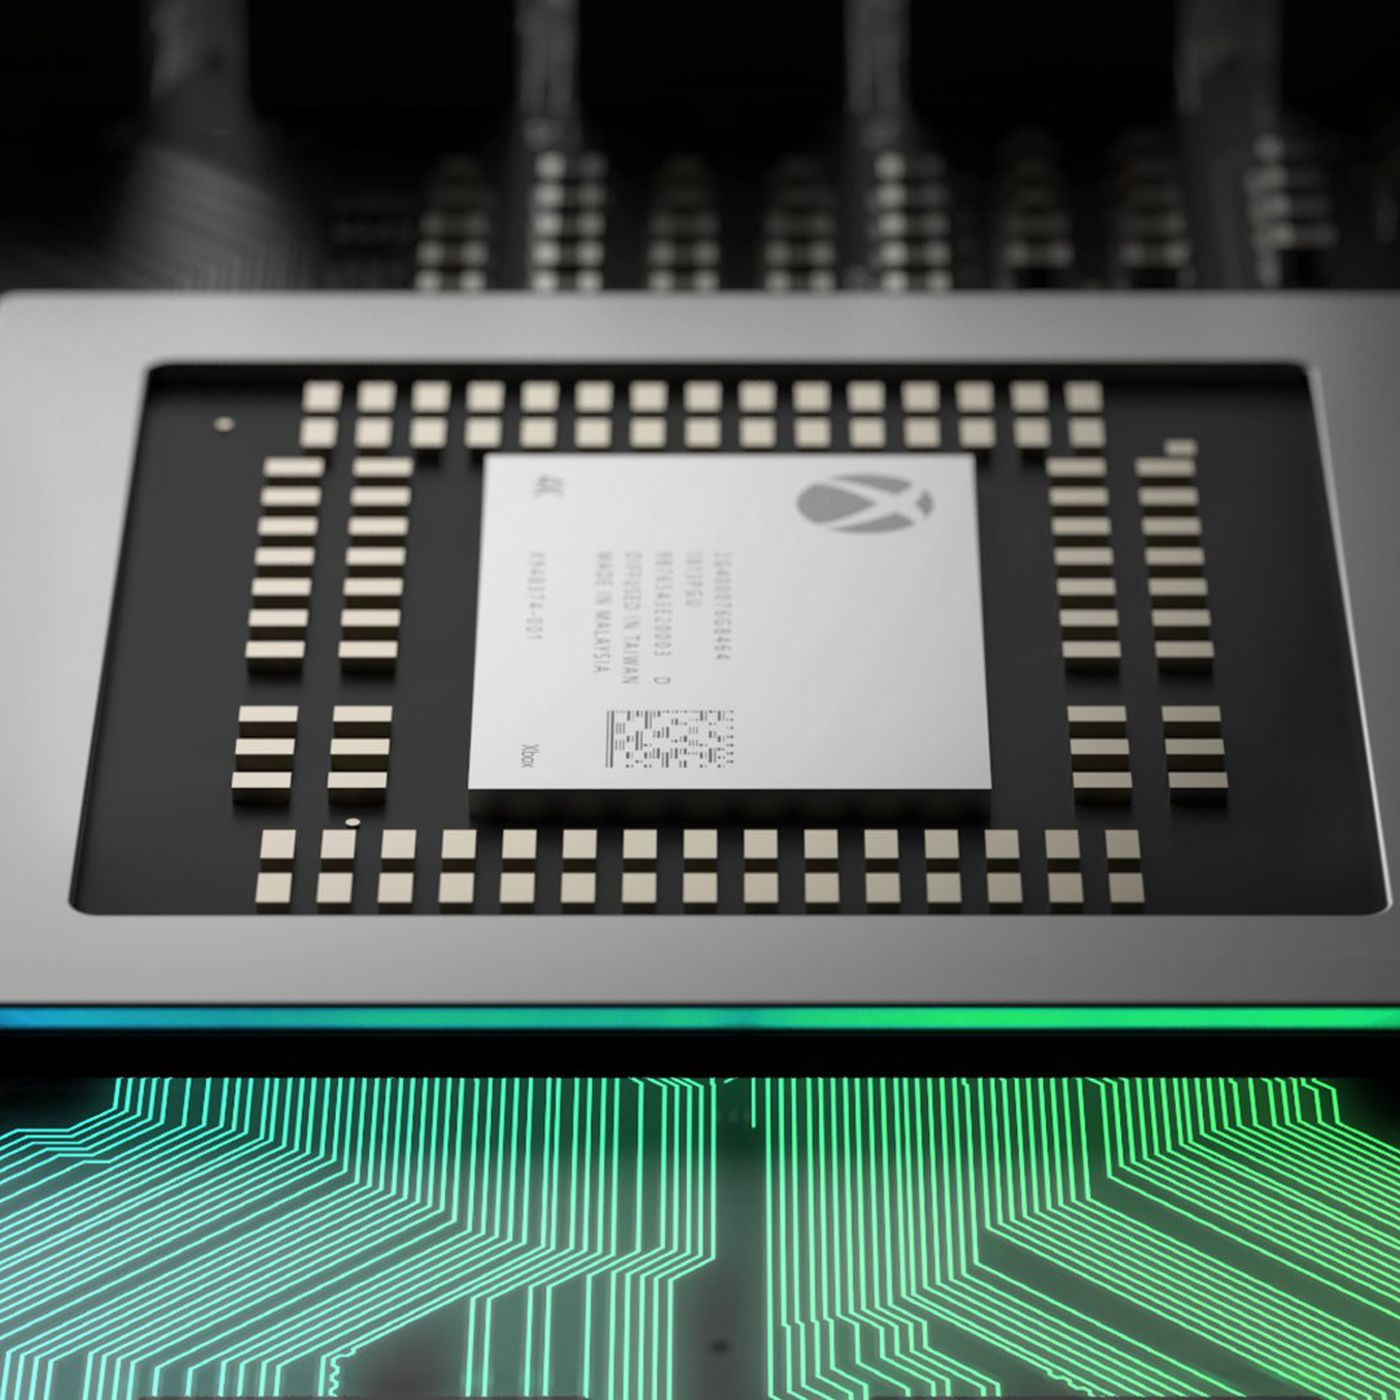 Microsoft To Reveal Xbox Project Scorpio Specs This Week The Verge Question Electronics Forum Circuits Projects And Microcontrollers